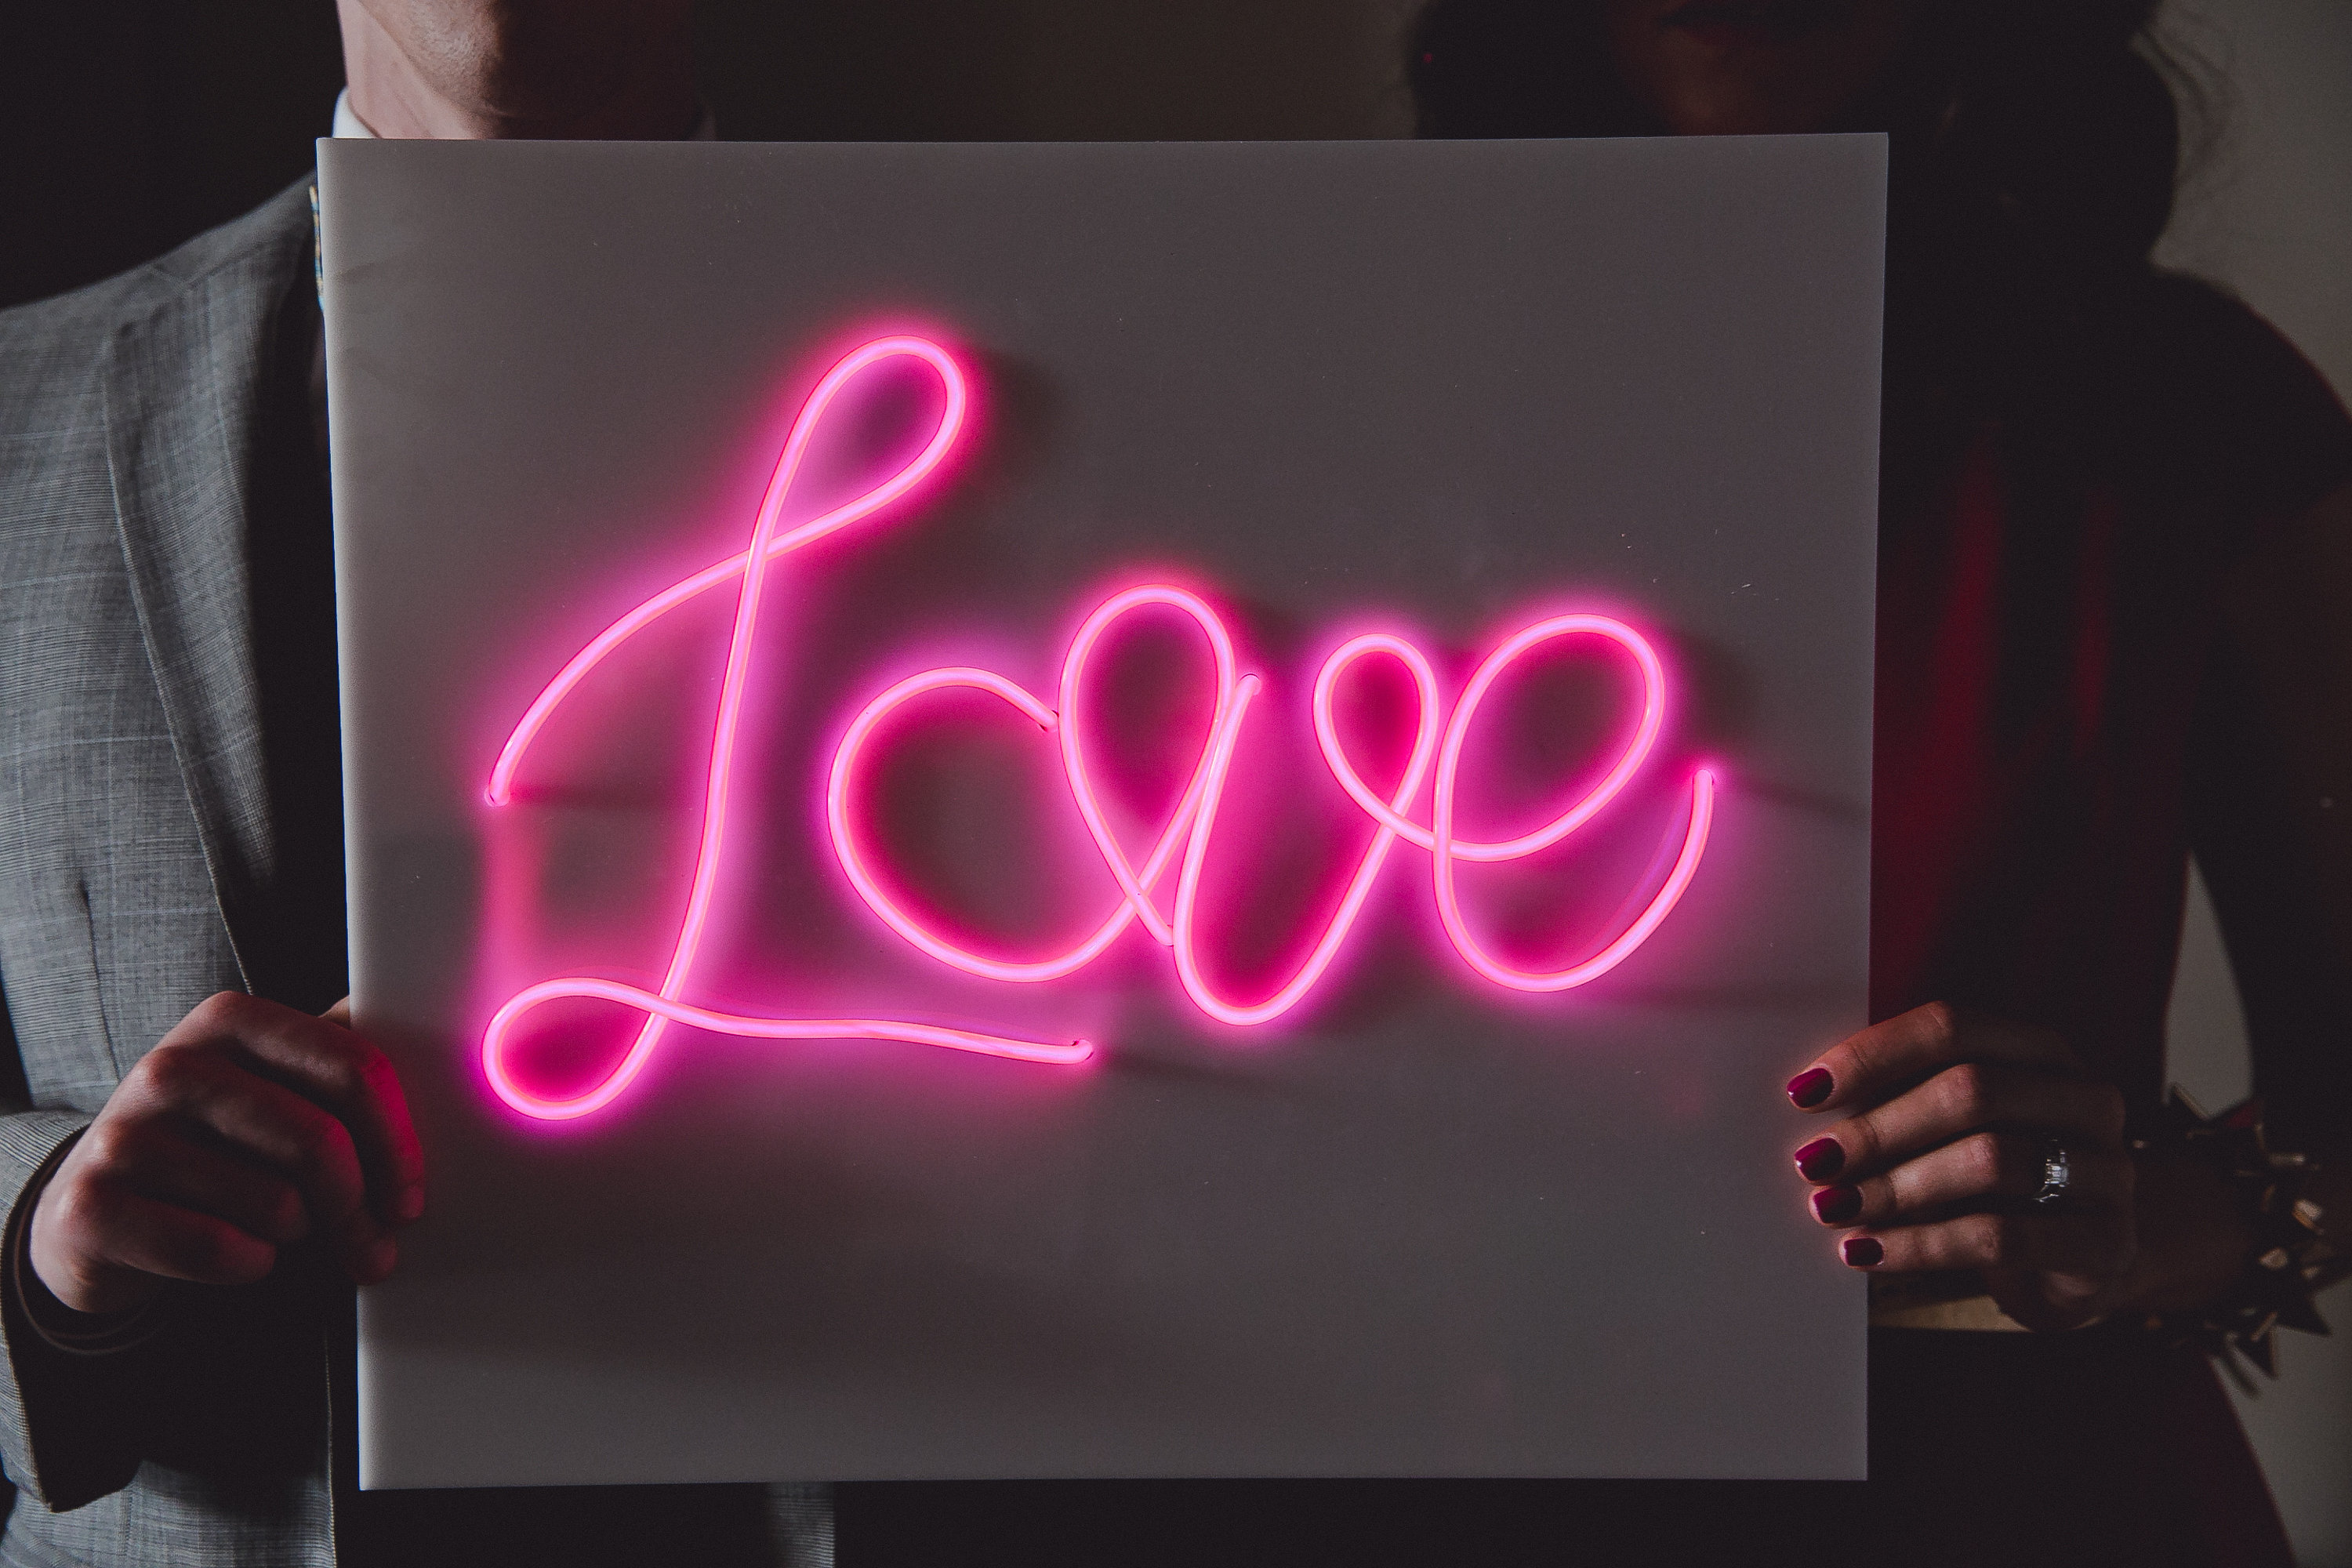 Create Your Own Quote Wallpaper Free How To Make A Diy Neon Sign With El Wire A Practical Wedding